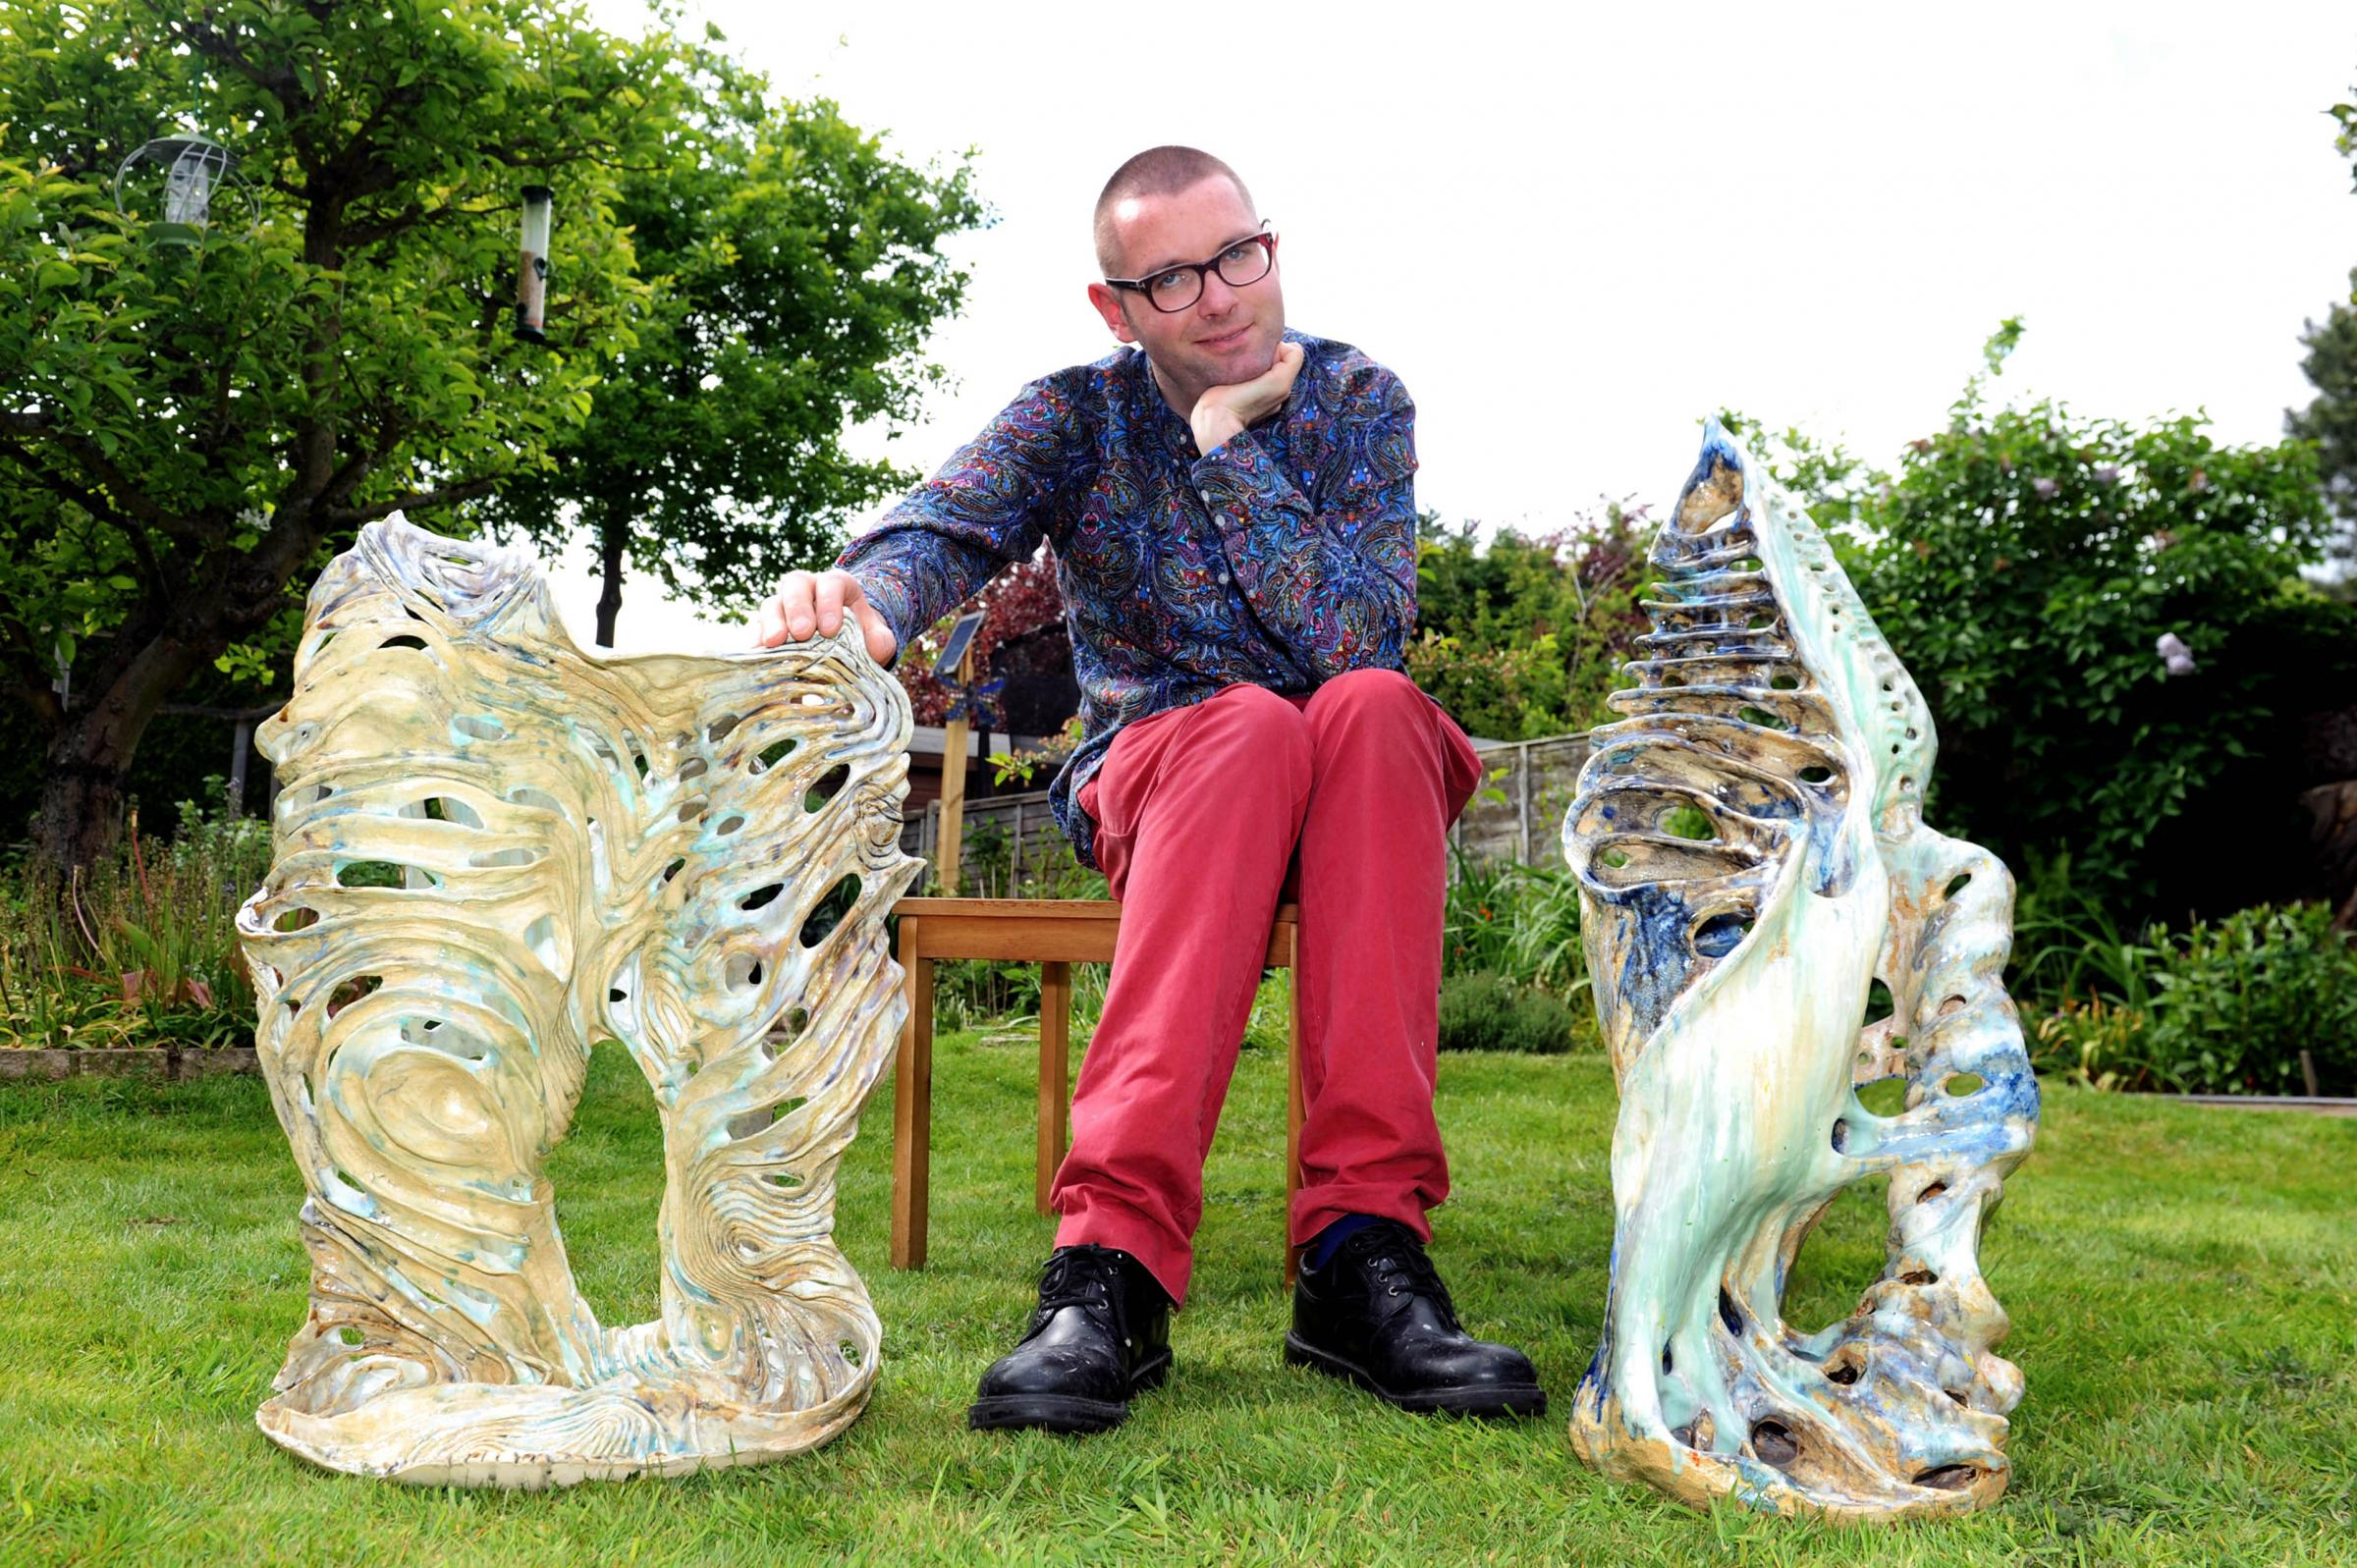 Sculptor Ben Nicolson is co-ordinating the Merton Arts Festival